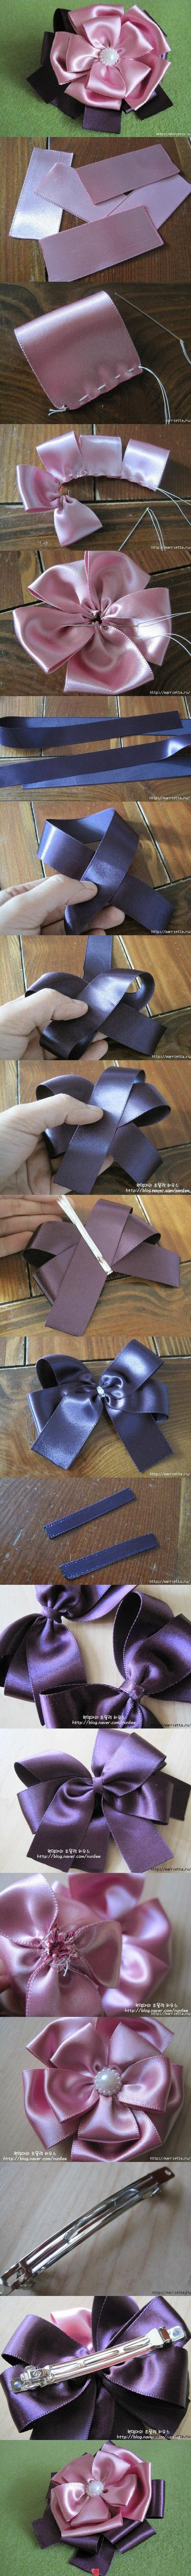 Diy hair clips. Beautiful!